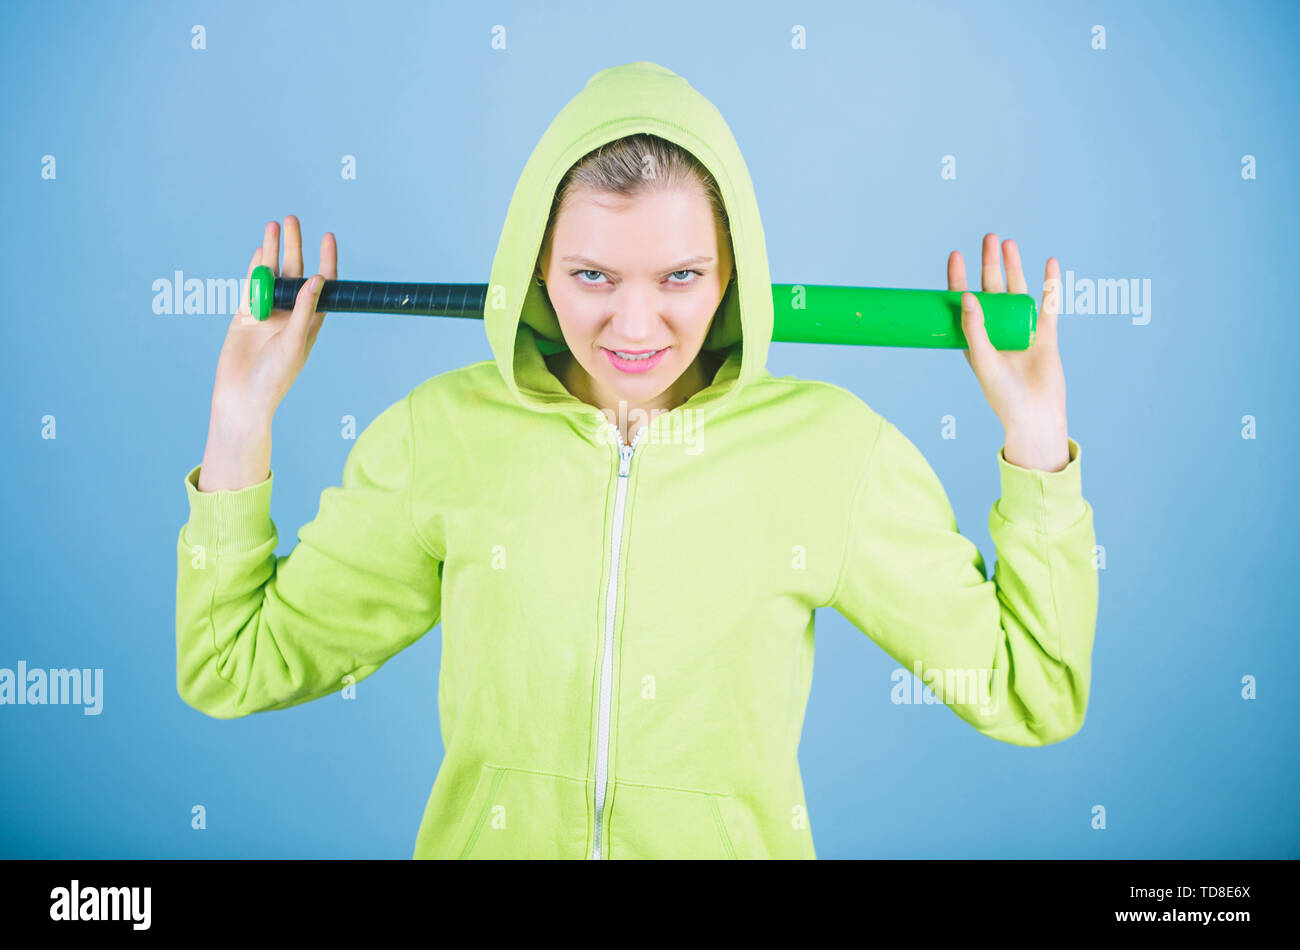 Bandit gang and conflict. aggressive woman with bat from bandit gang. woman workout with baseball bat. Fighting with aggression. Sport equipment. Athl - Stock Image